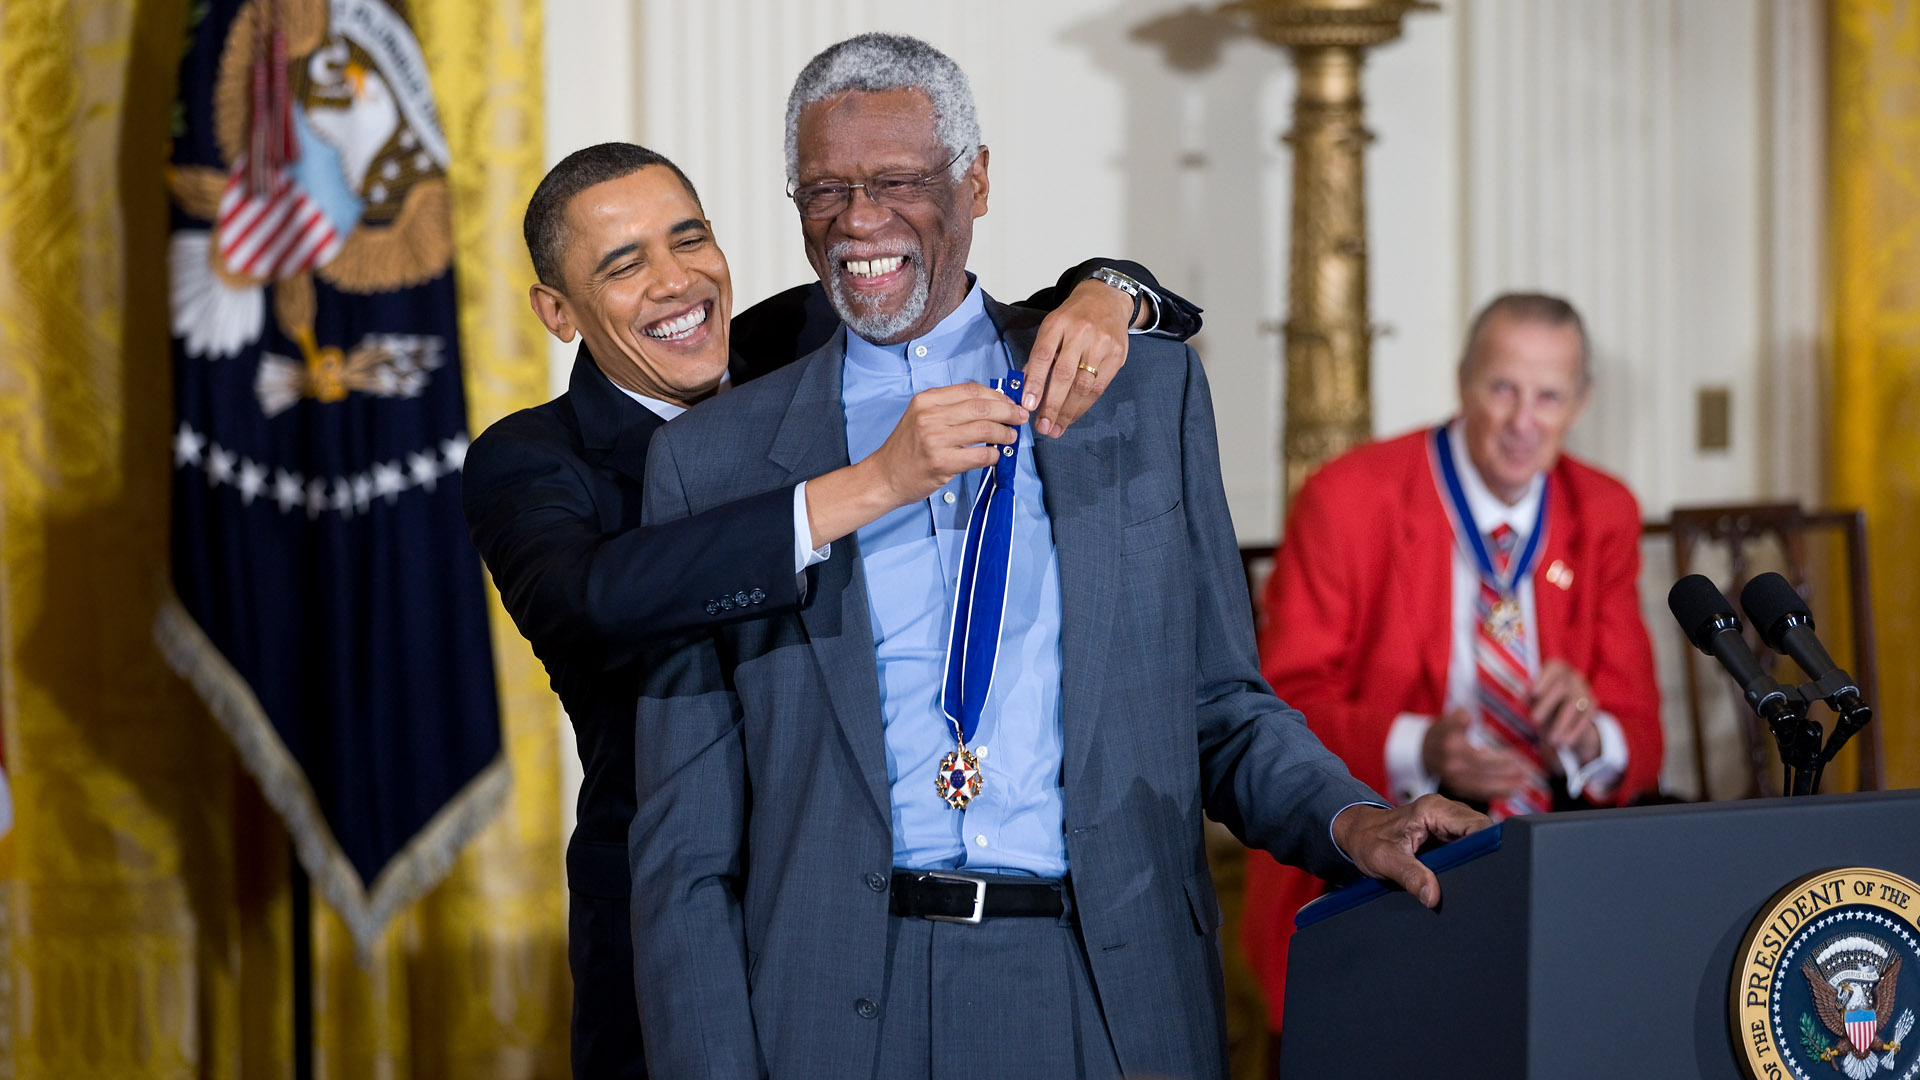 President Obama awarded Russell with the Presidential Medal of Freedom in 2011.